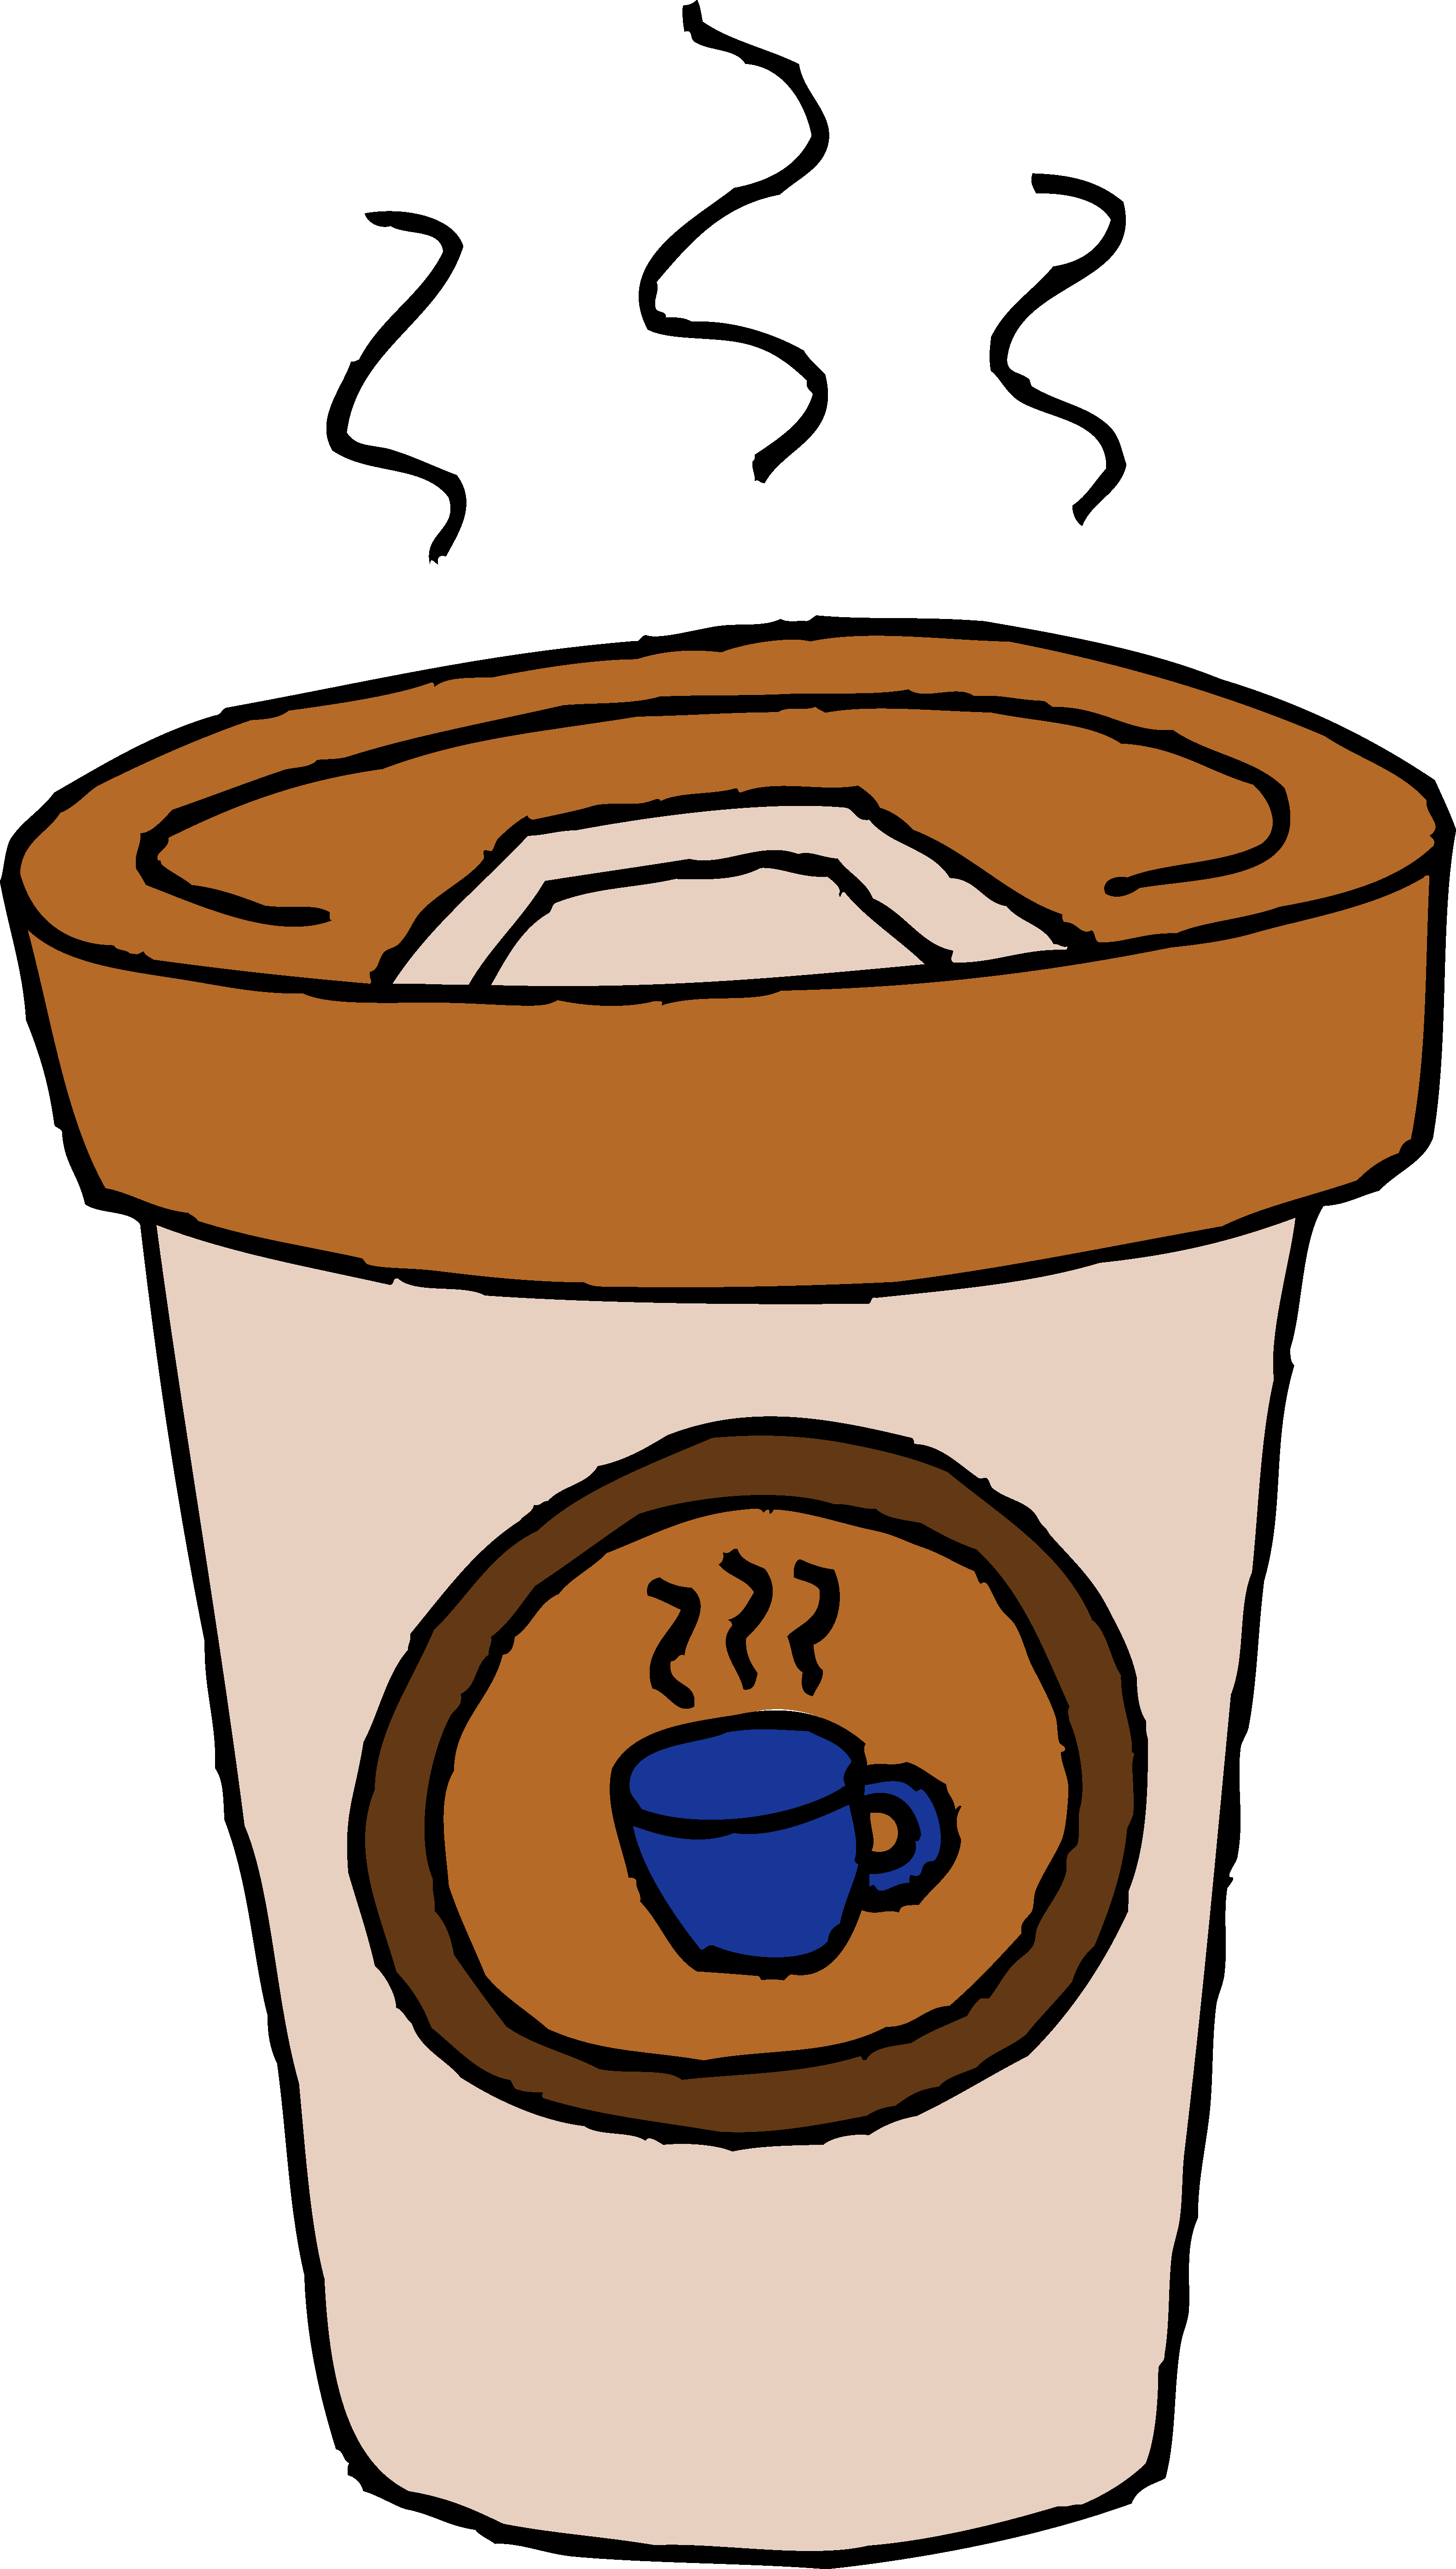 Free Clip Art Coffee Urn Free Transparent Coffee Cliparts Download Free Clip Art